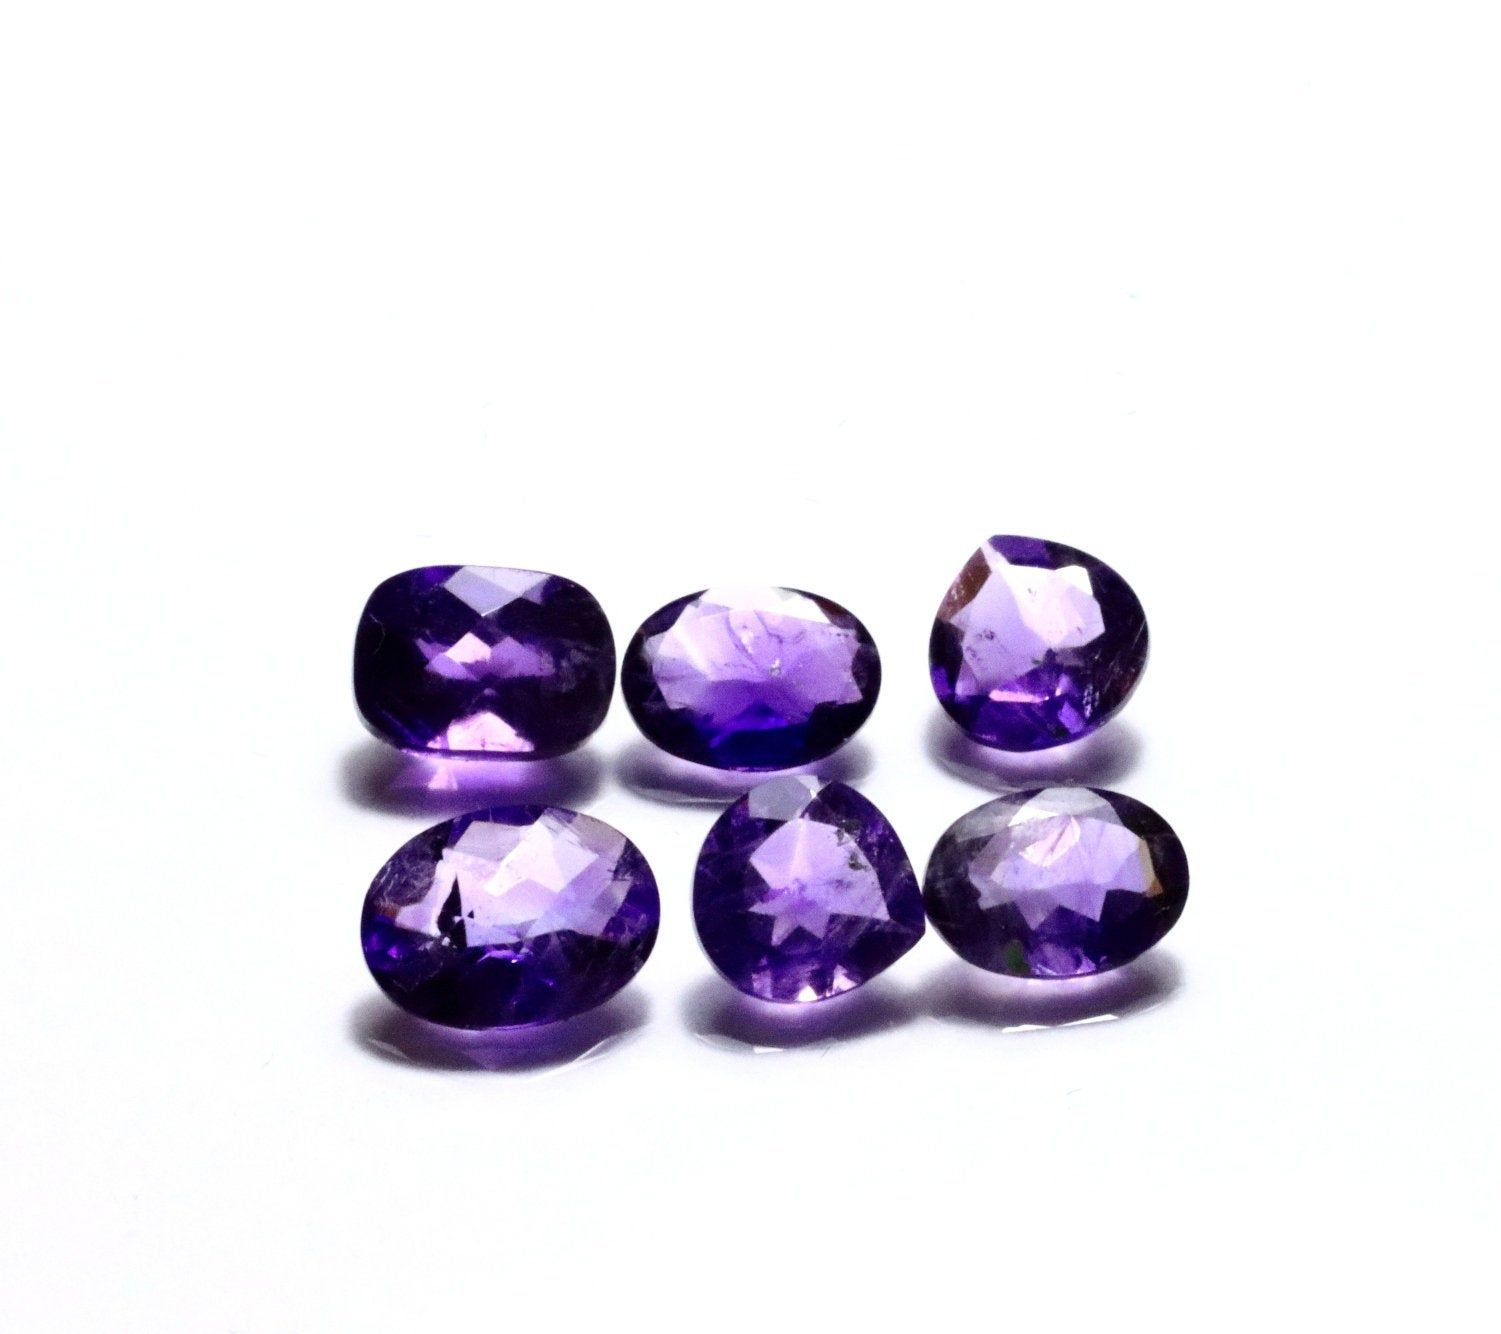 10 pieces 5x7 mm Oval Amethyst Natural Cabochon Loose Gemstone